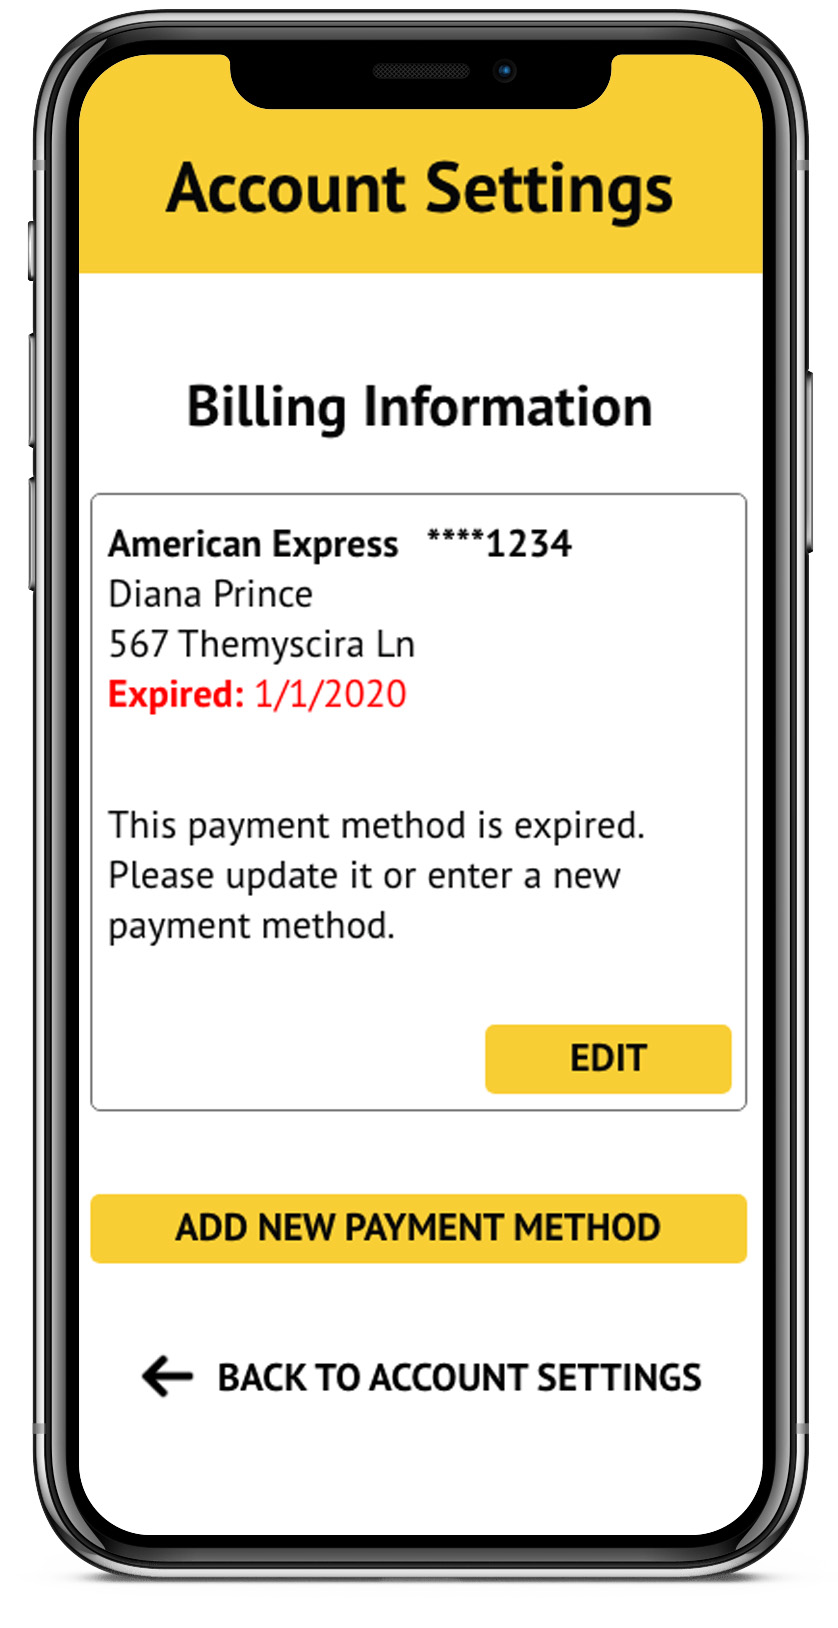 This payment method is expired. Please update it or enter a new payment method.           Button: EDIT